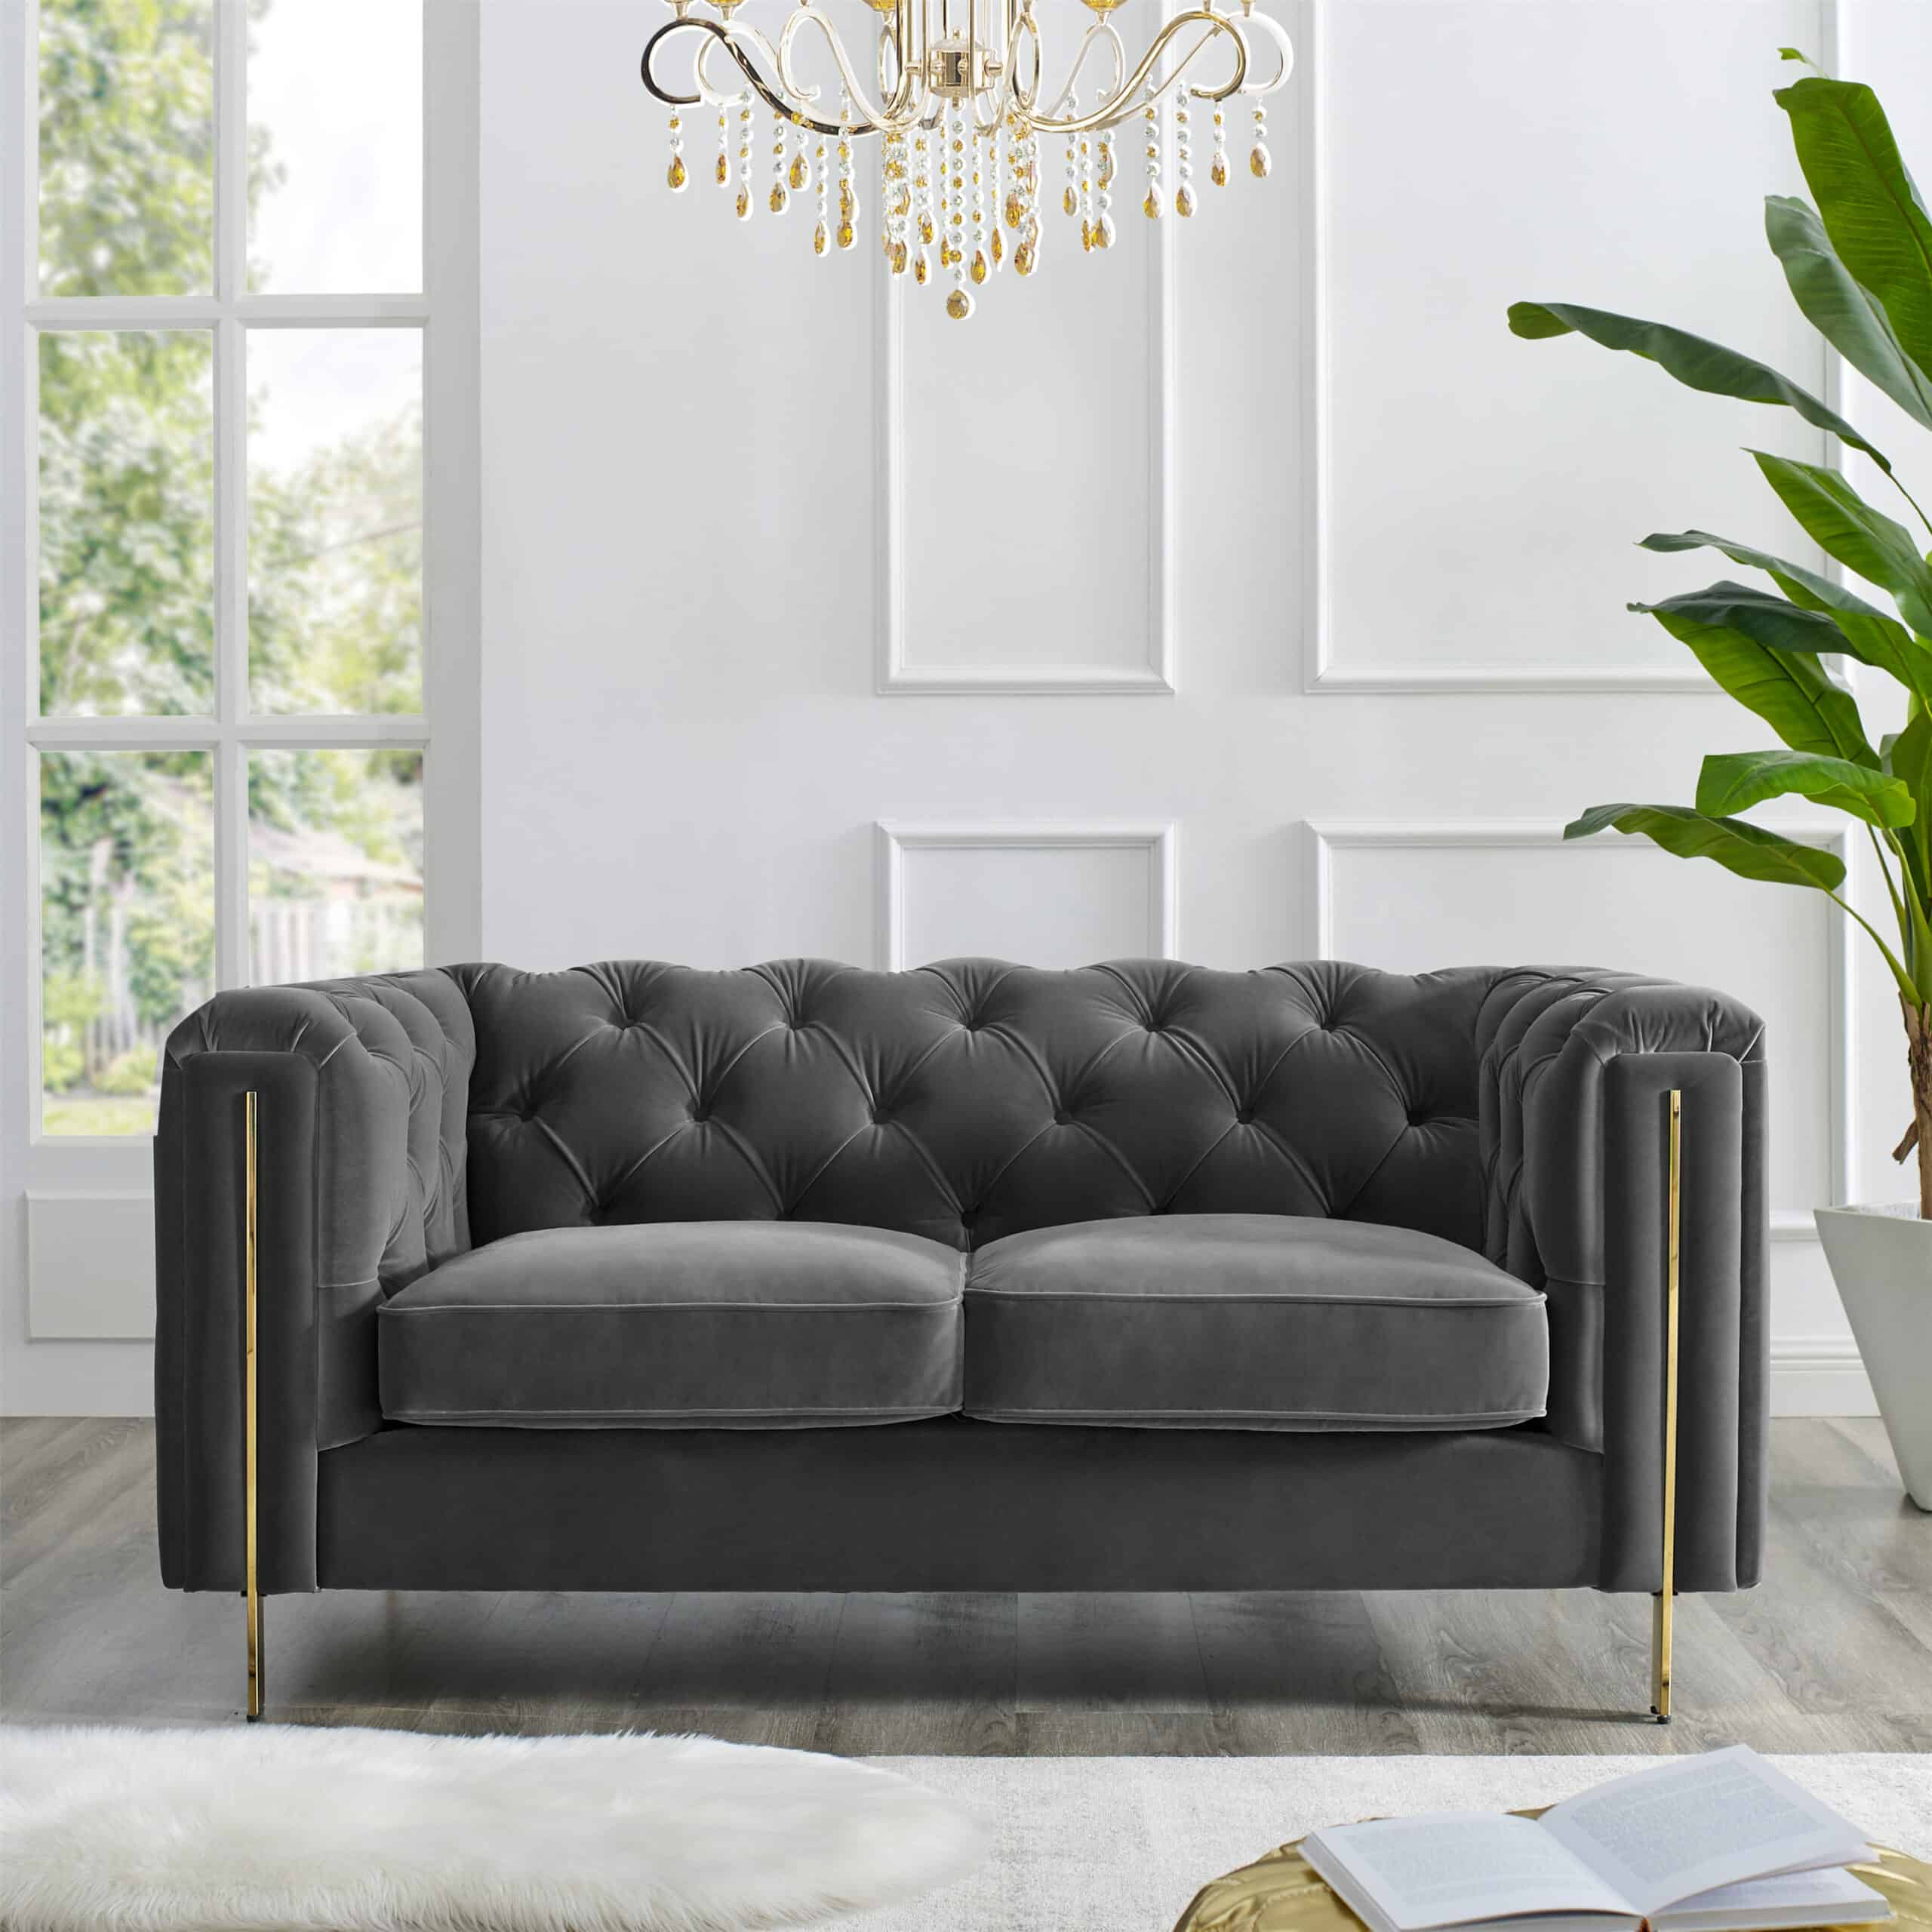 Charlotte Moonlight Grey Velvet Two Seater Sofa